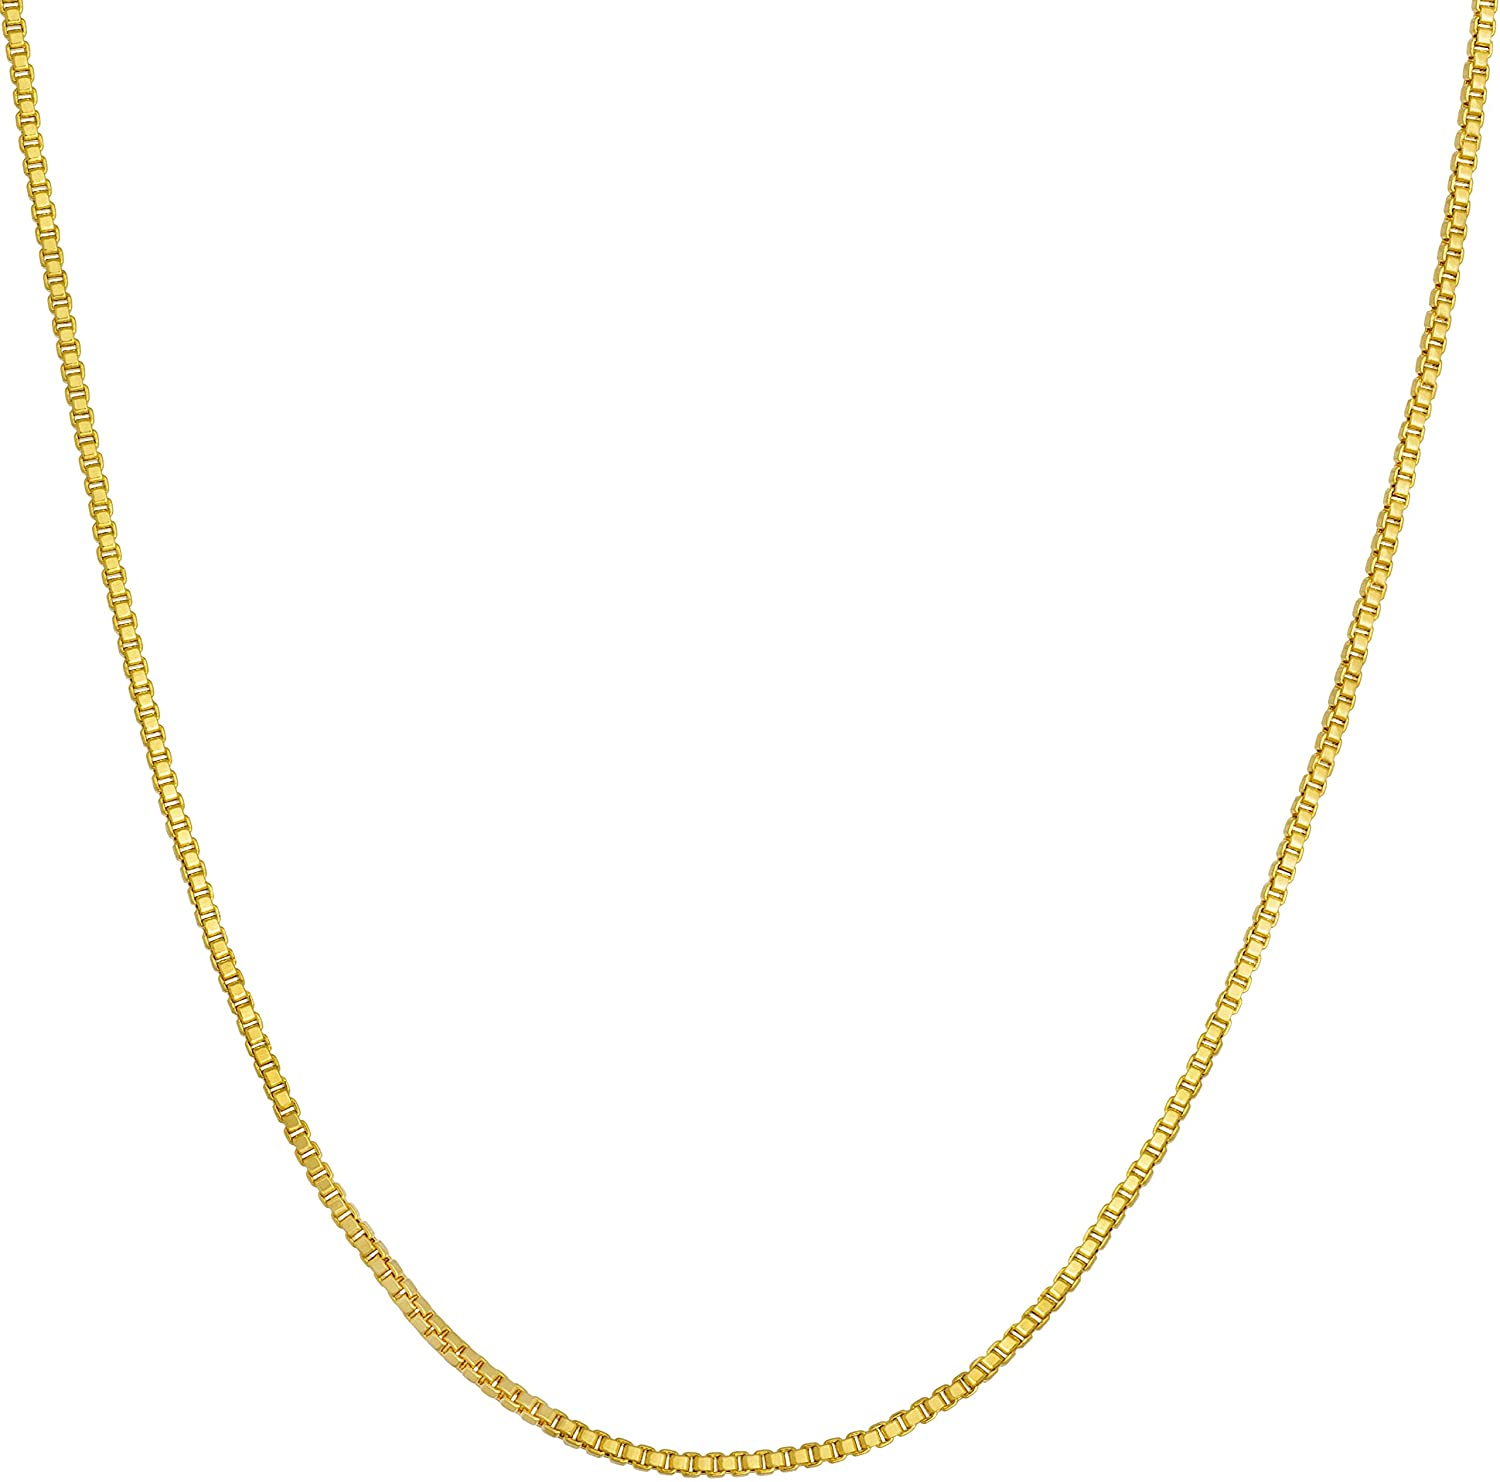 LIFETIME JEWELRY 1mm Box Chain Necklace for Women and Men 24k Real Gold Plated with Free Lifetime Replacement Guarantee